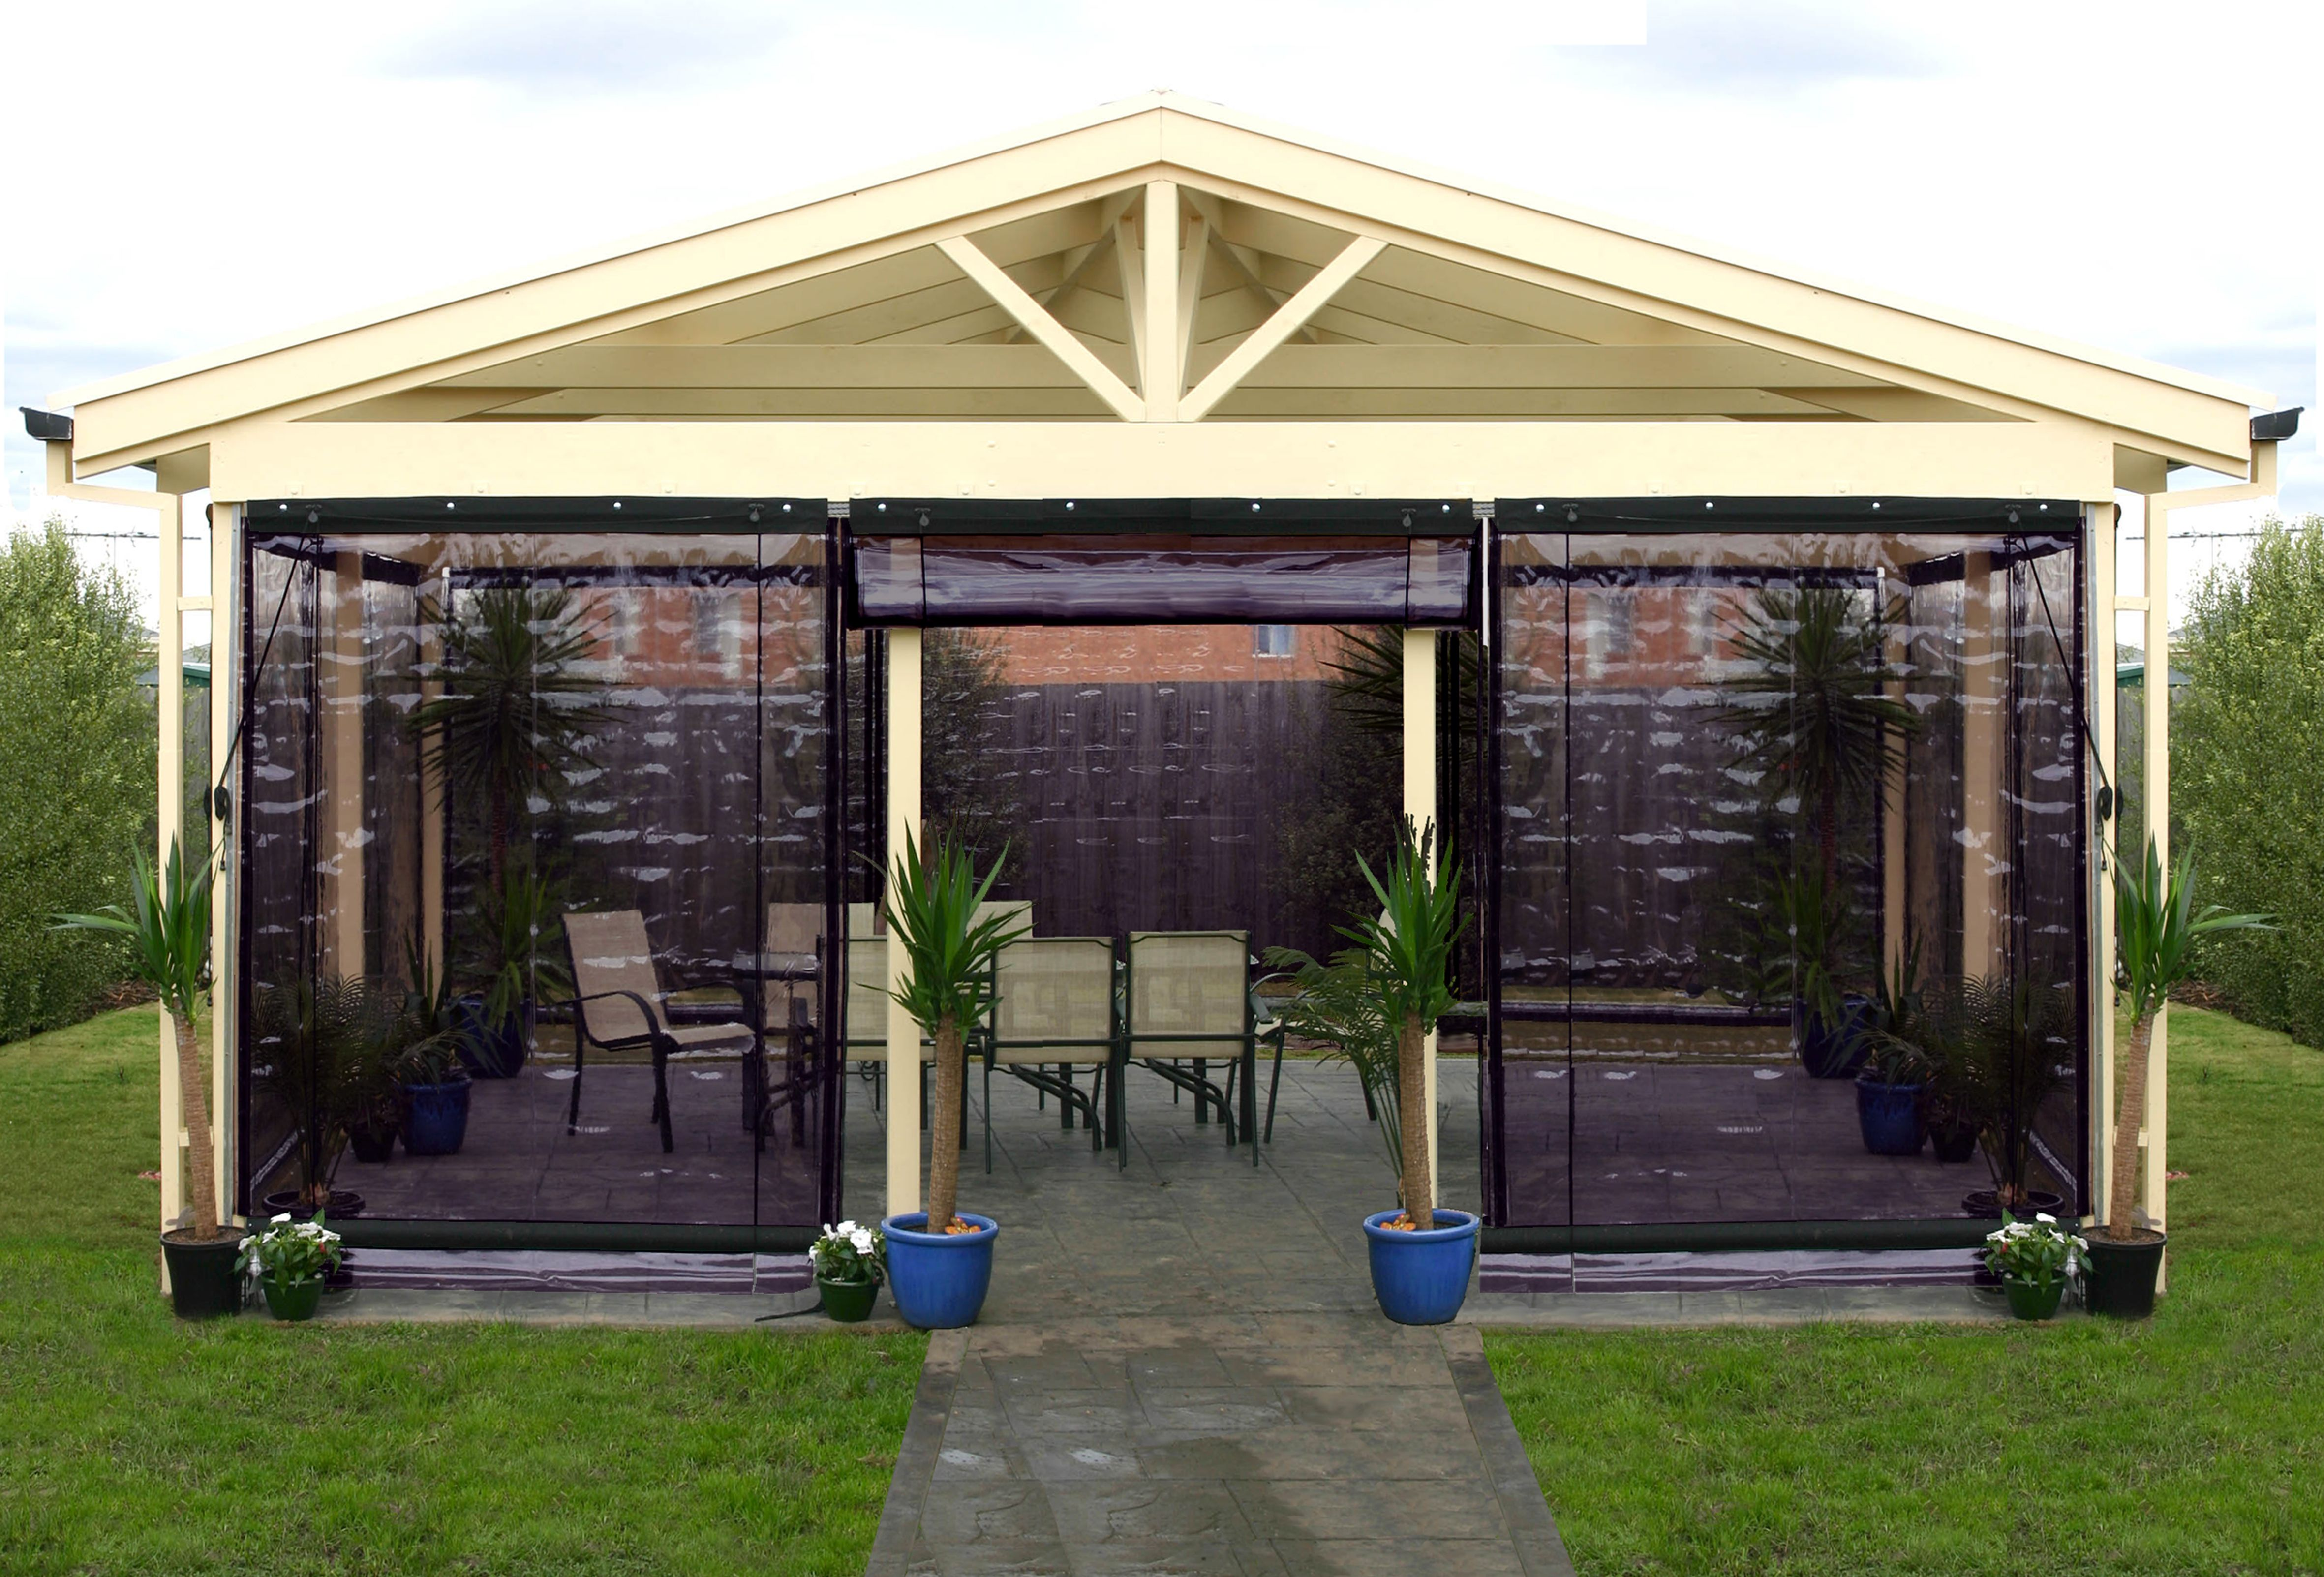 Outdoor Blinds Bunnings Blind Outdoor Bistro Shp 210x240cm Cha Pvc Blk Bi2124ch Bunnings